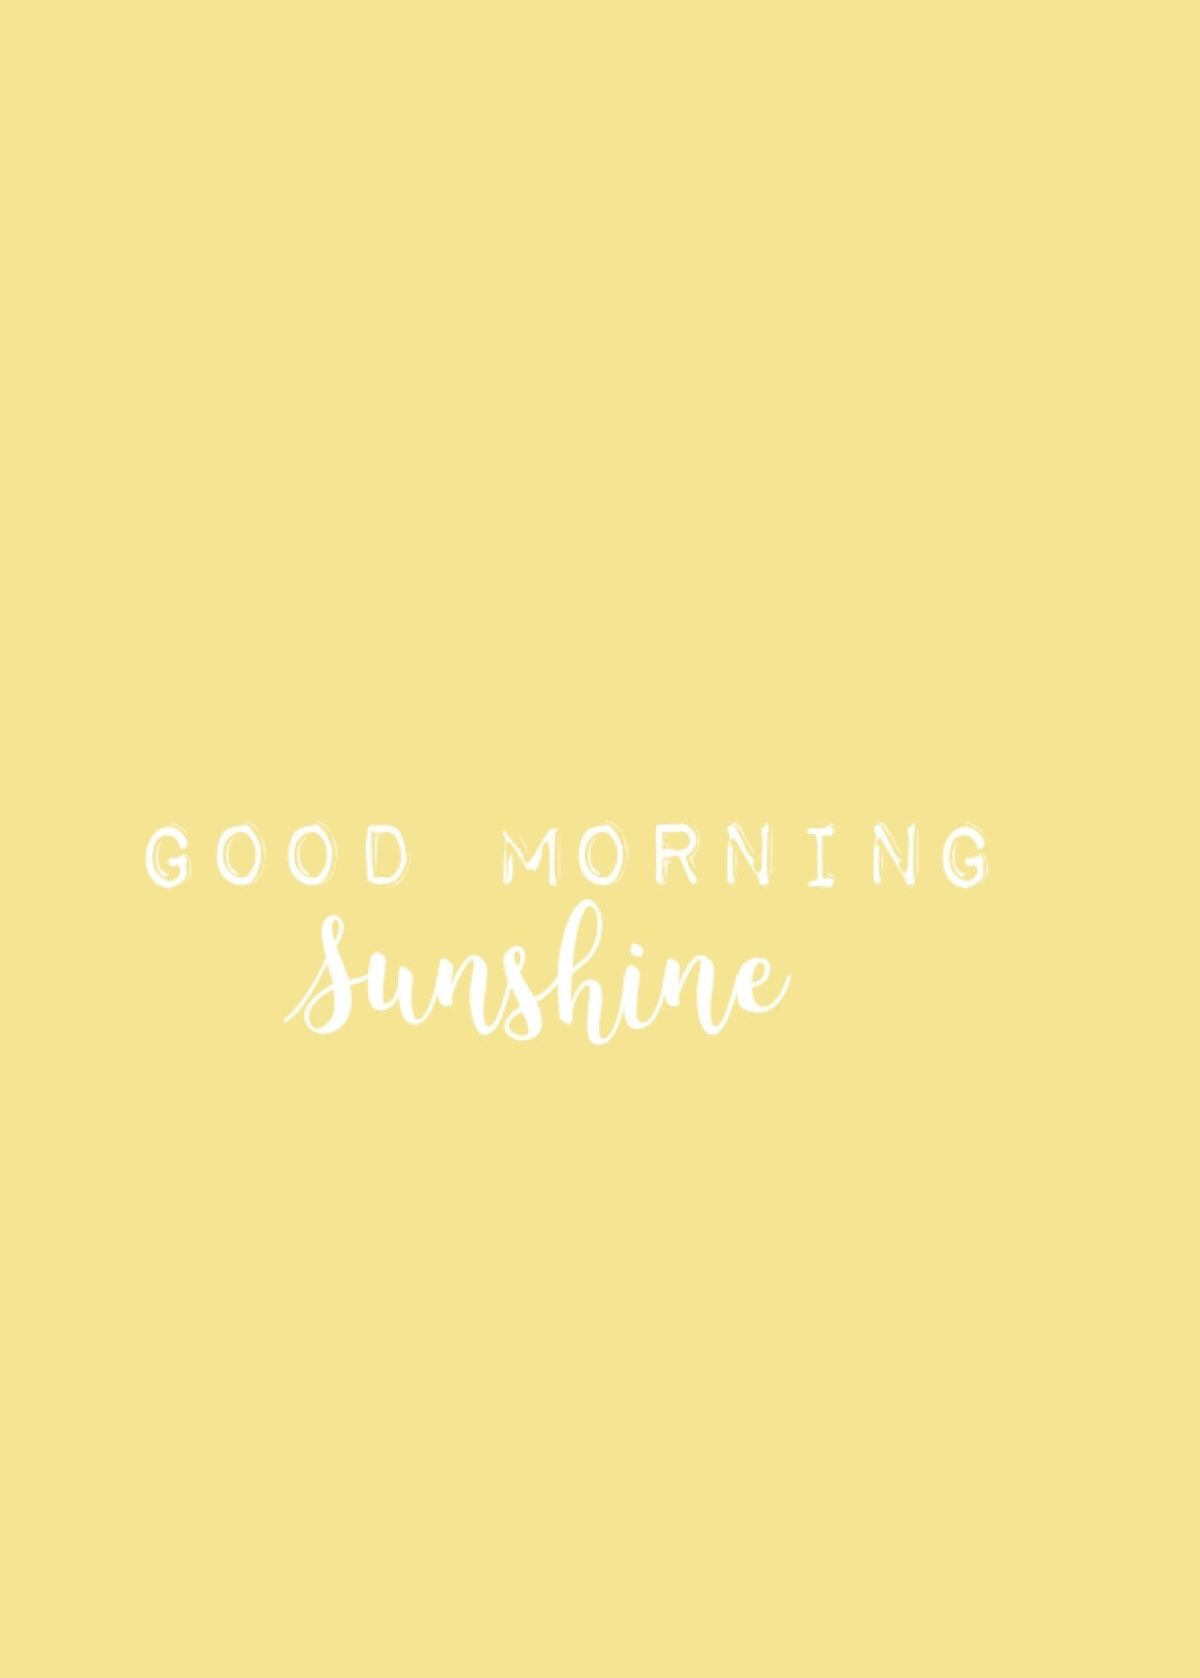 Aesthetic Backgrounds Cute Phrases Cute Wallpapers Quotes Good Morning Sunshine